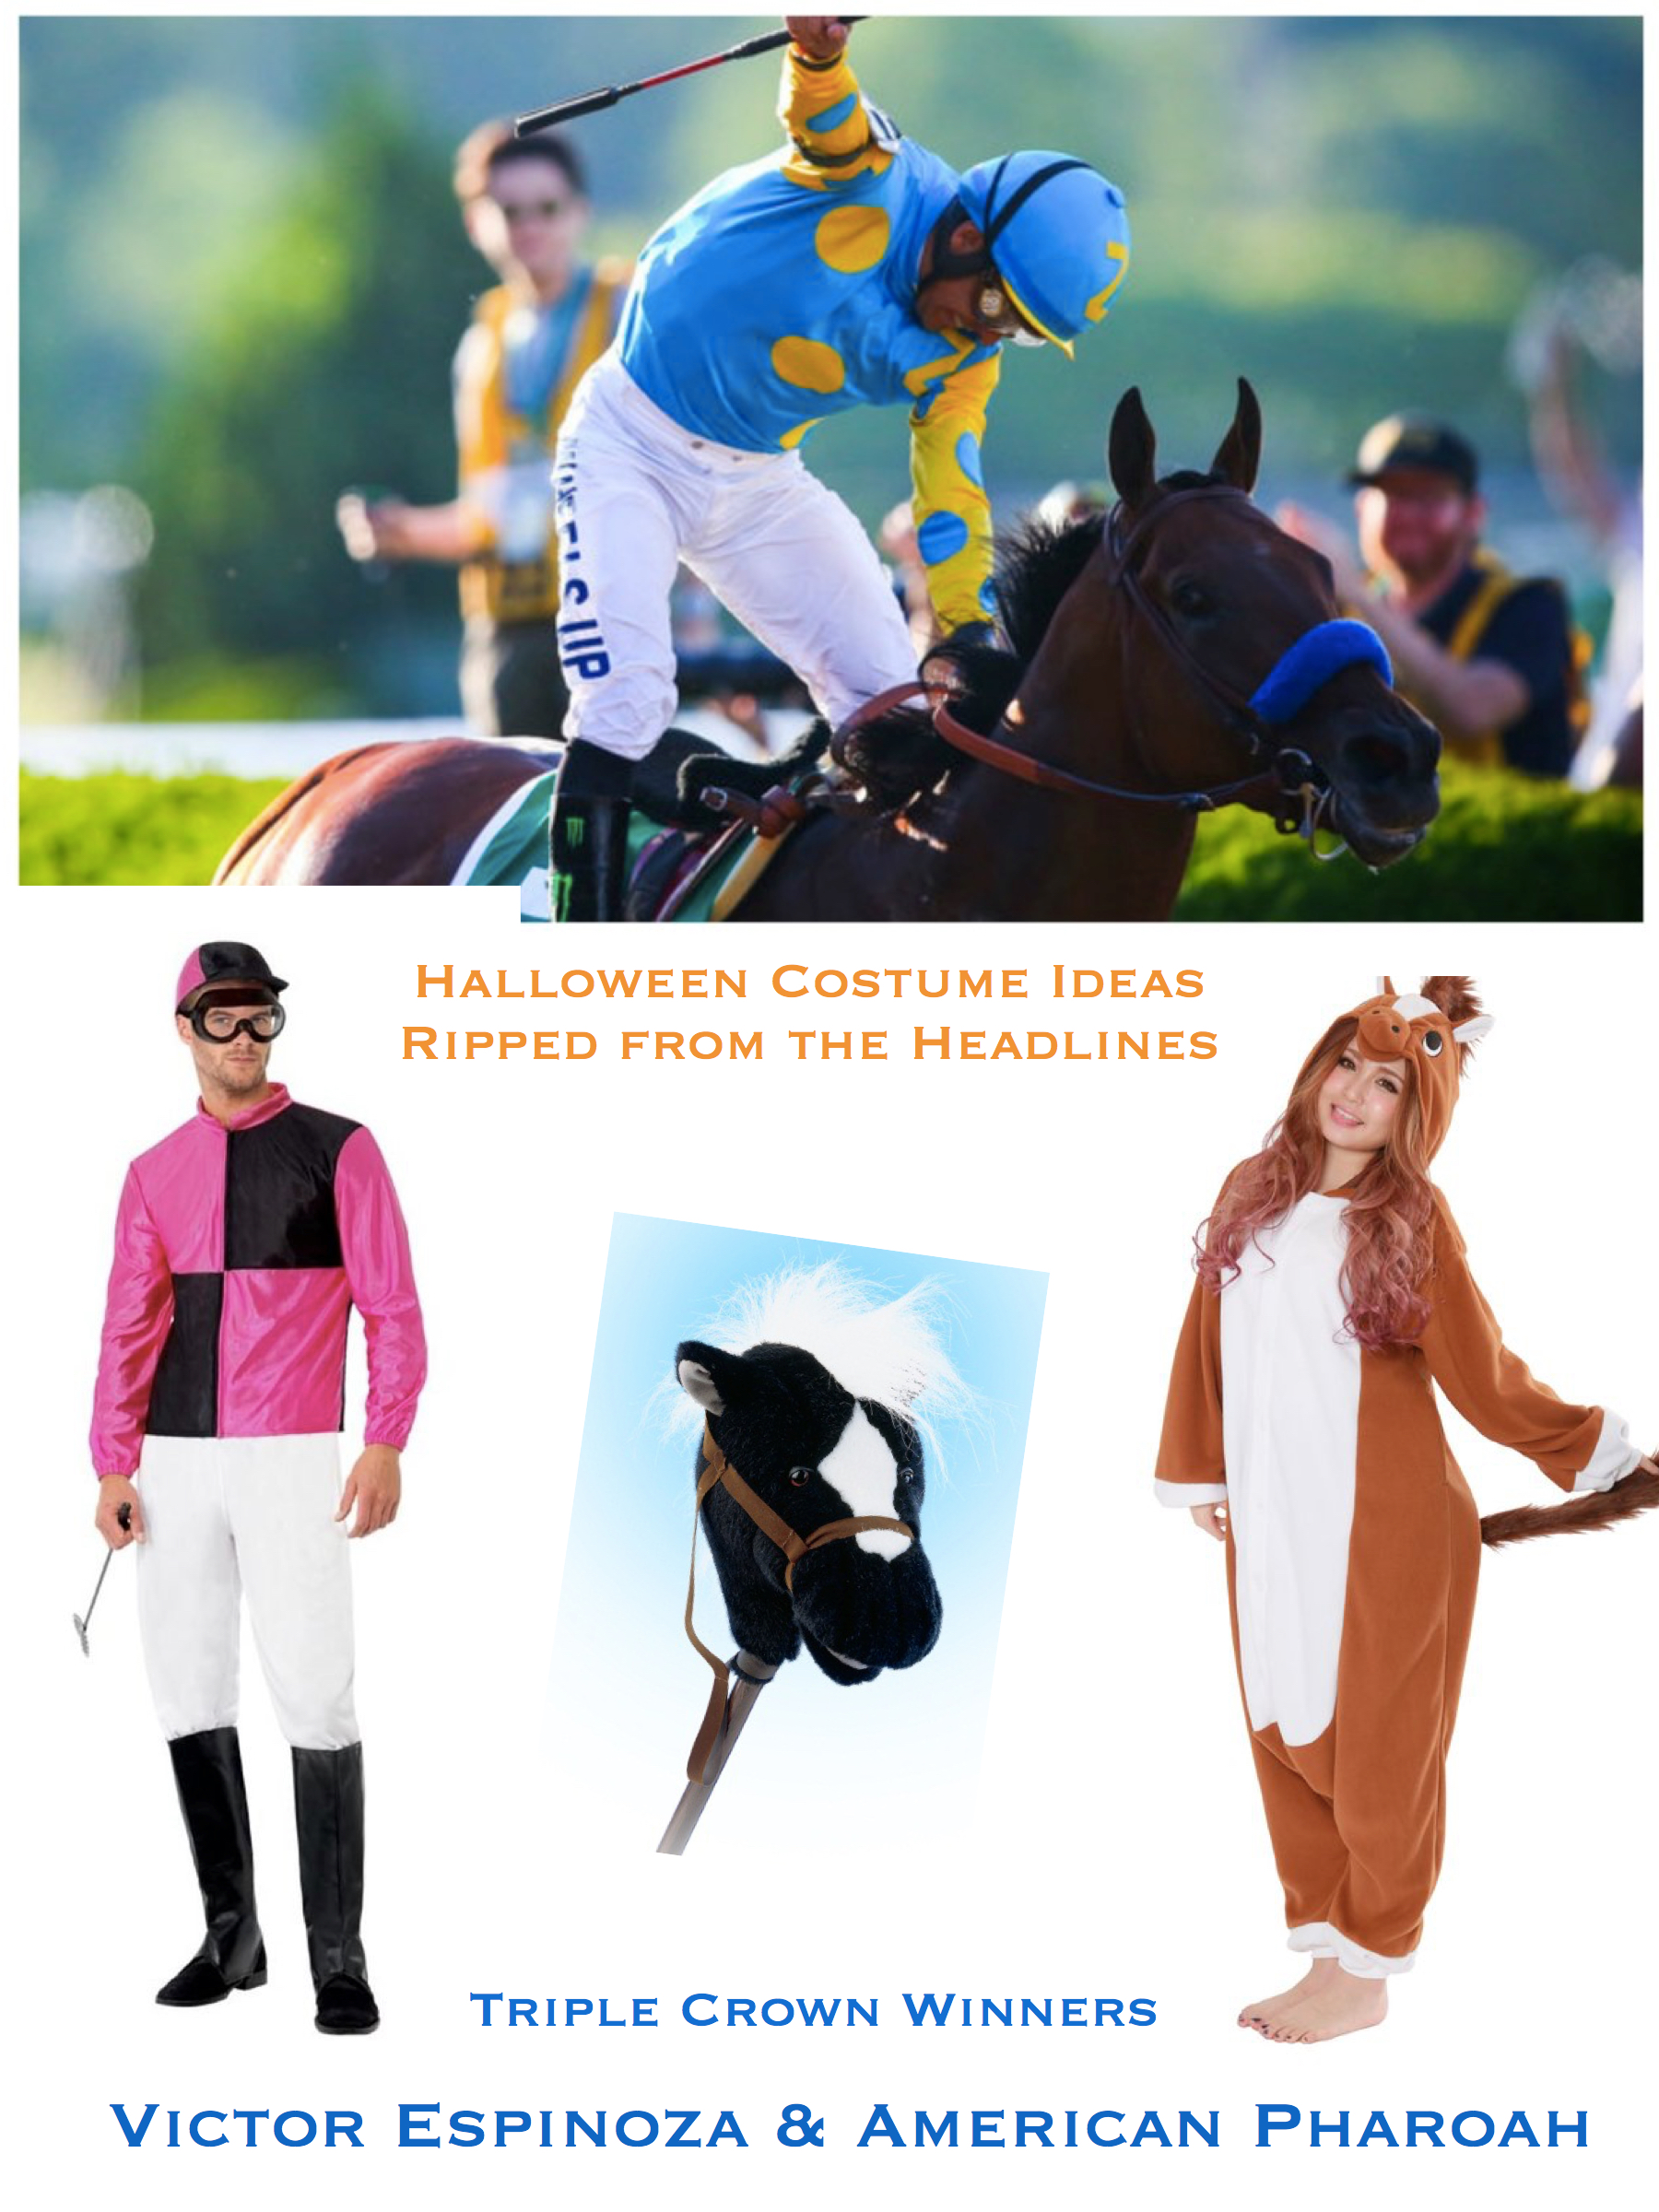 Halloween Costume Ideas Ripped from the Headlines_Triple Crown_Horse_Jockey